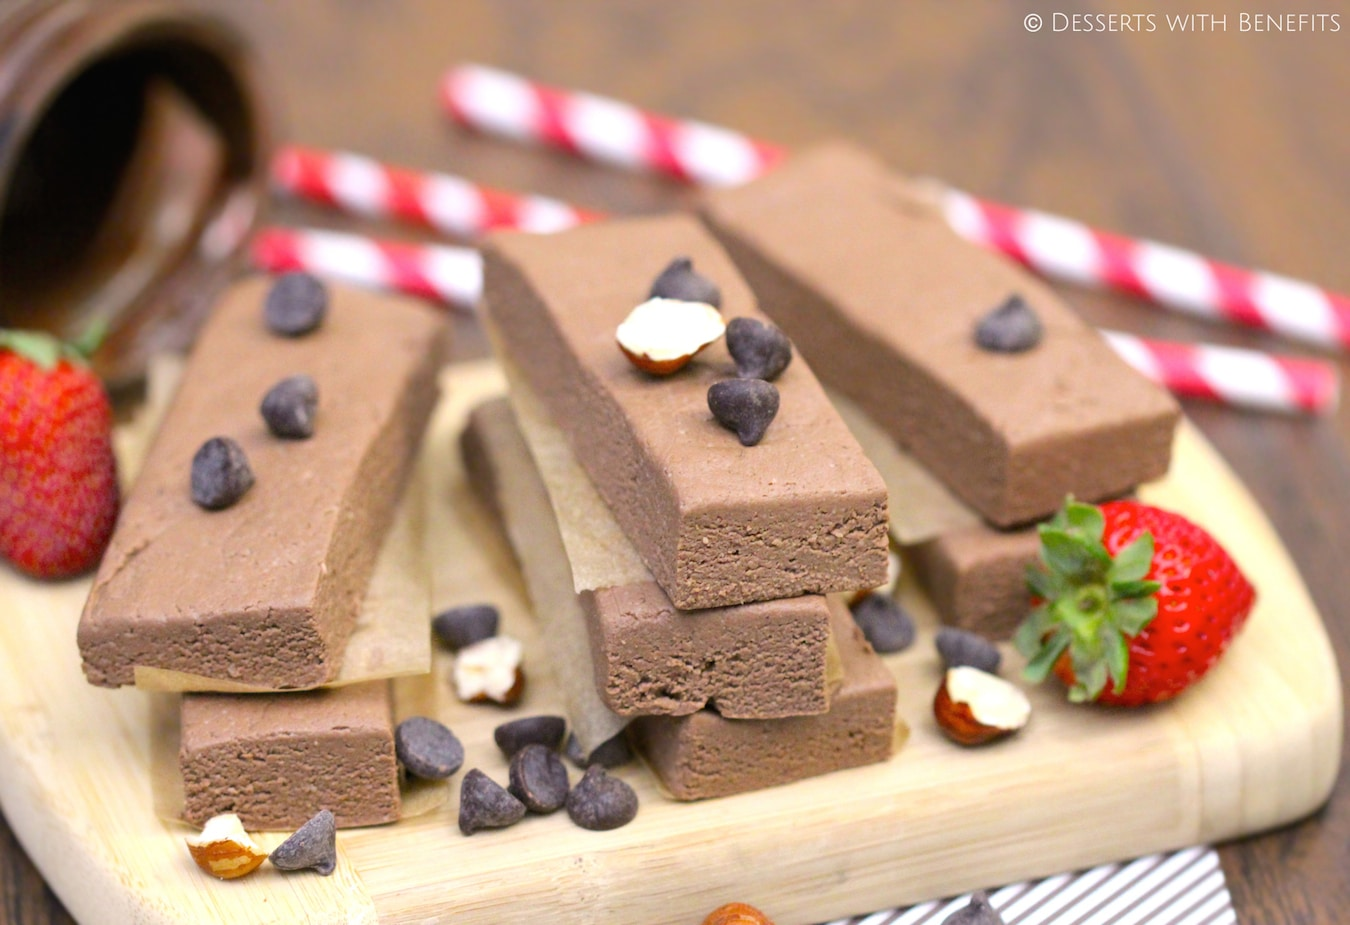 Low Fat High Fibre Cake Recipes: Healthy Nutella Fudge Protein Bars